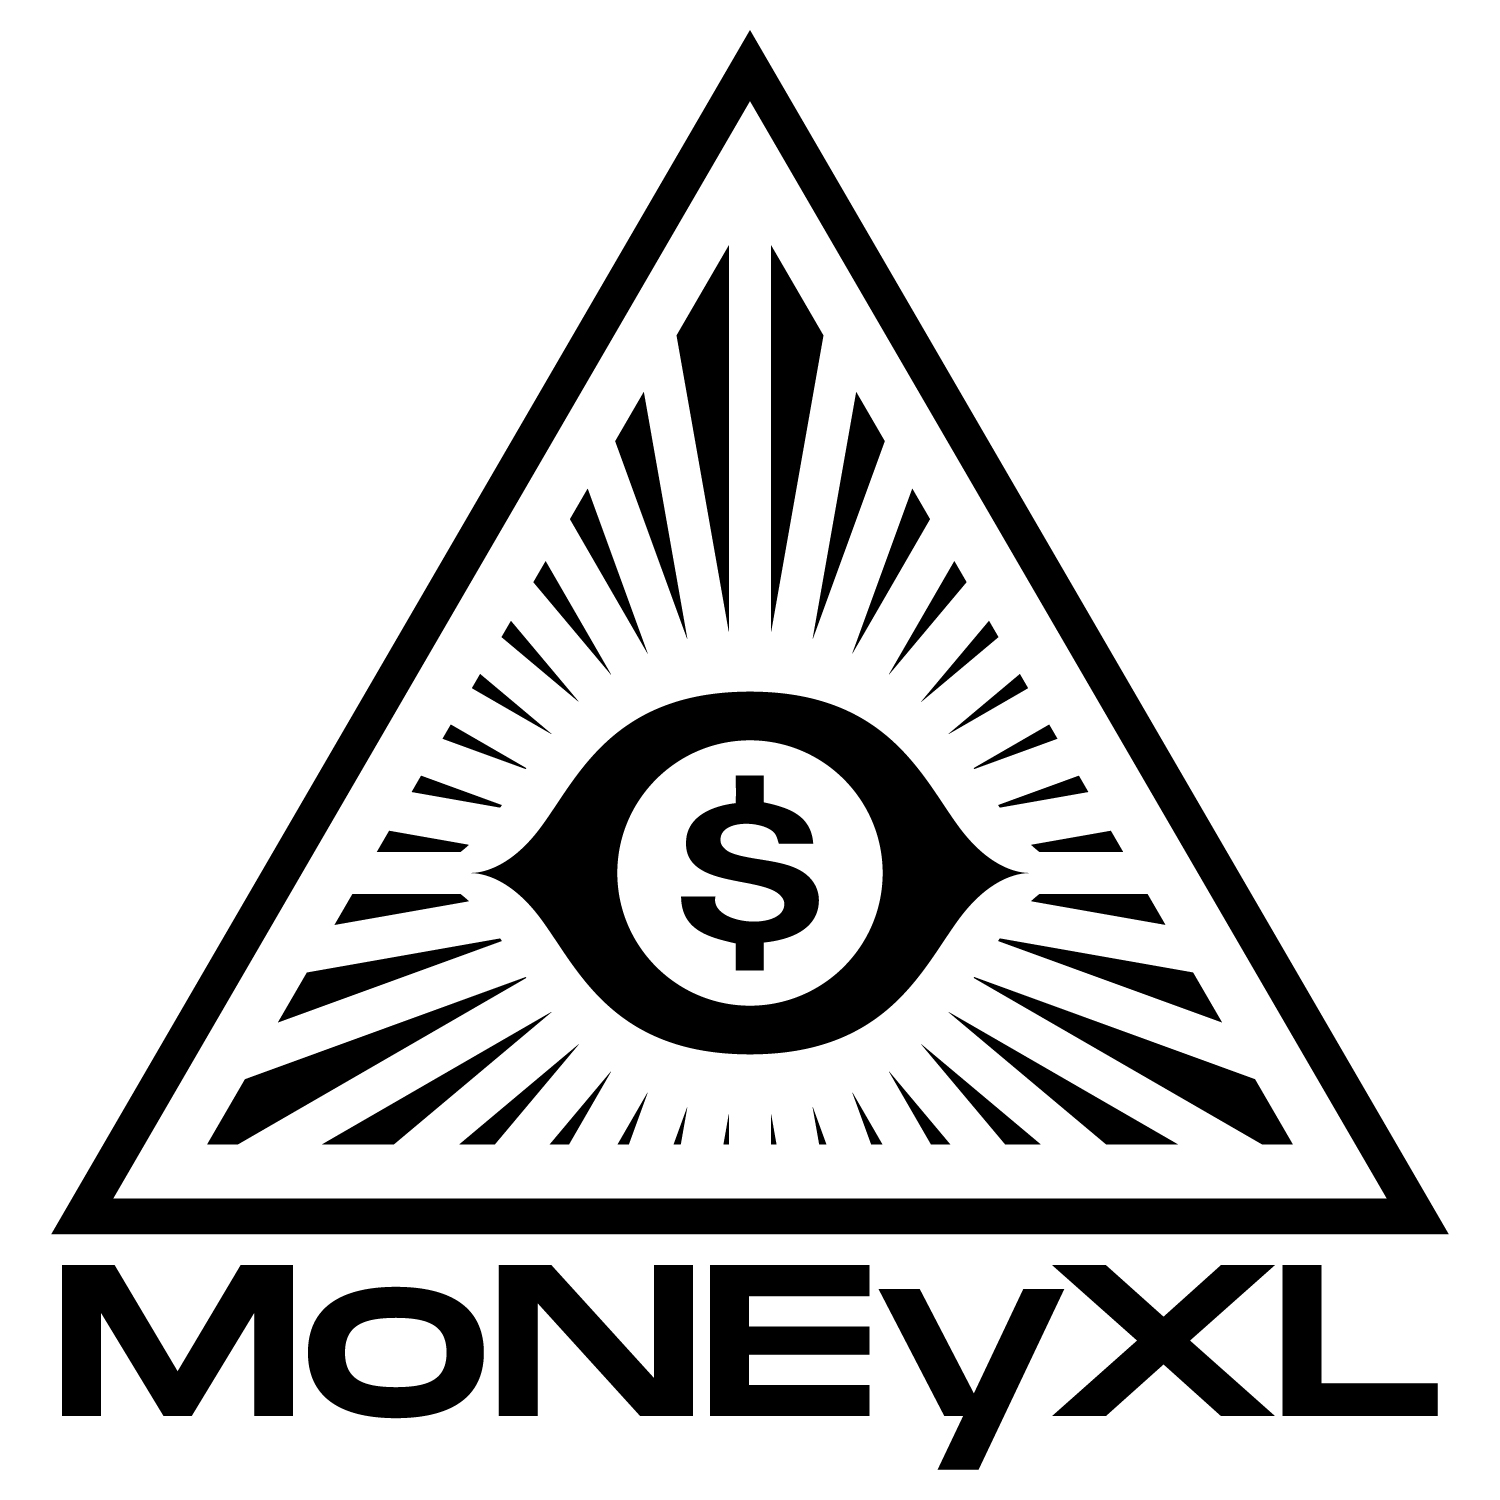 moneyxl - MoneyXL was a project that attempted to break boundaries and bridge sounds together. The logo is a representation of how the entire rap game is rigged and the bottom line is dollar signs.